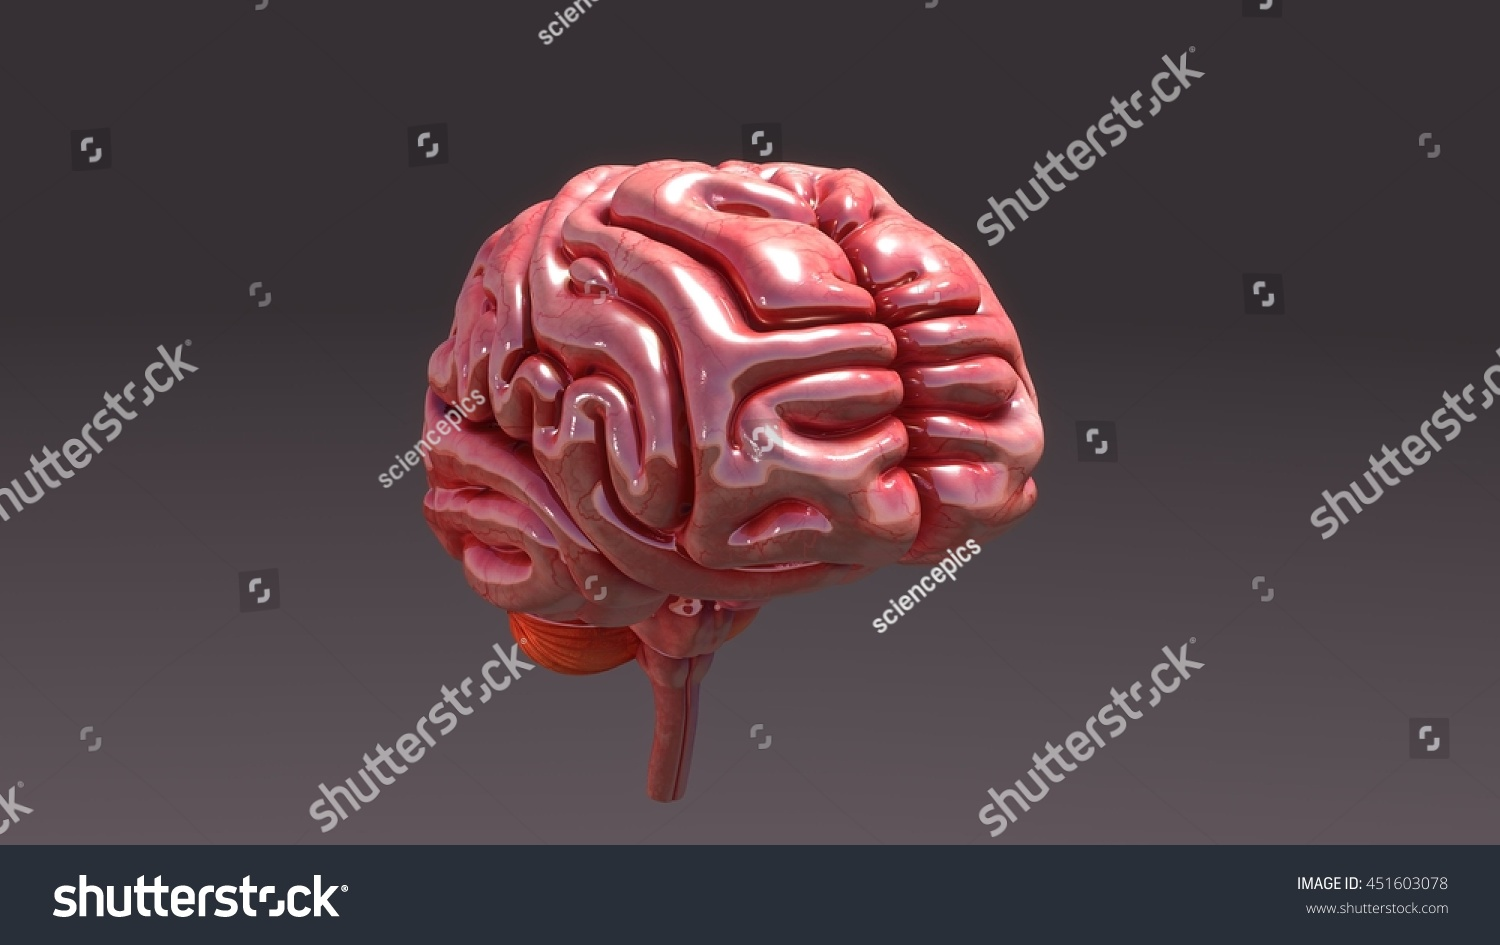 Human Brain Anatomy 3 D Illustration Stock Illustration 451603078 ...